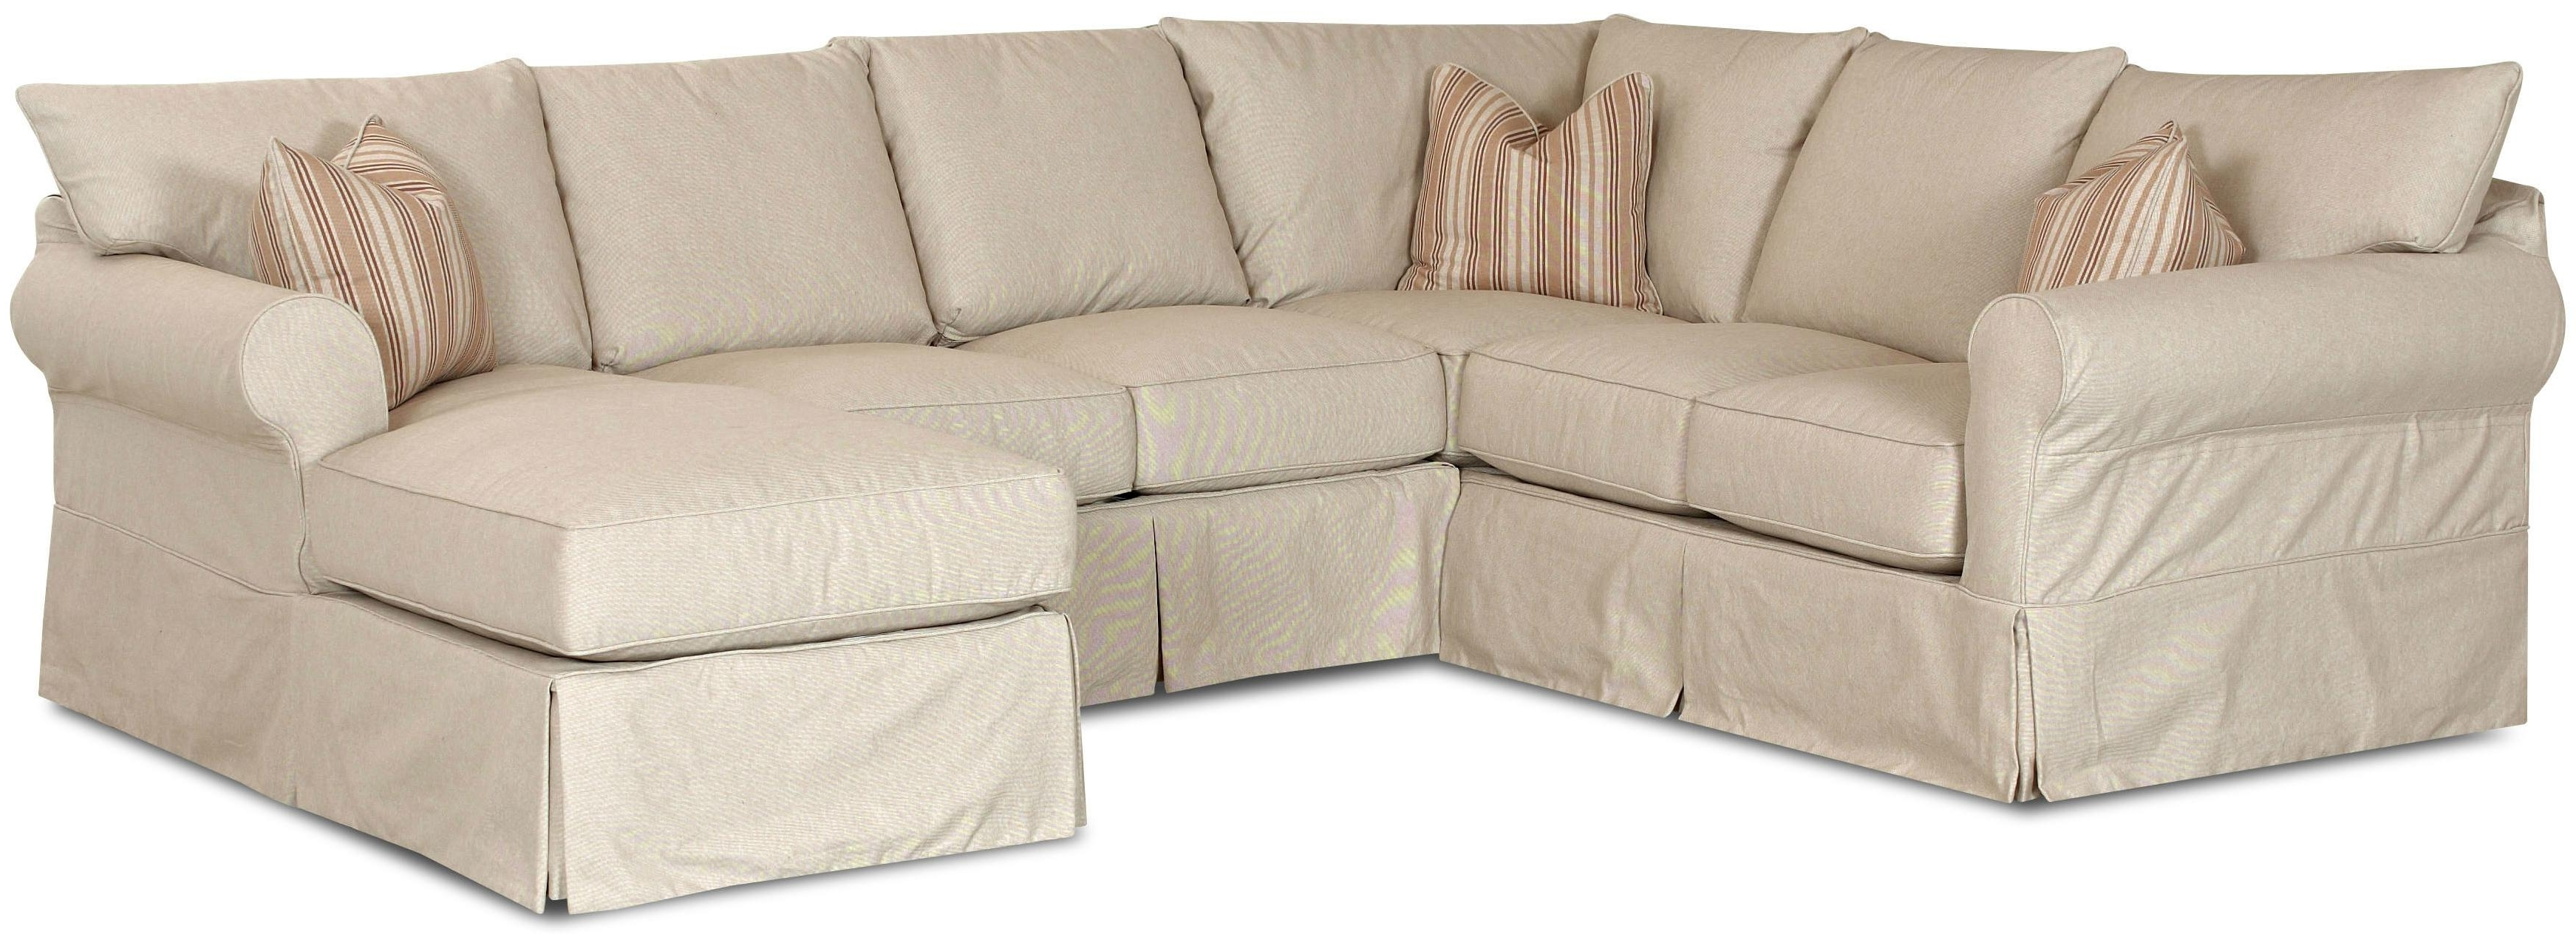 Chaise Sofa Covers Within Recent Klaussner Jenny Slip Cover Sectional Sofa With Right Chaise – Ahfa (View 12 of 15)